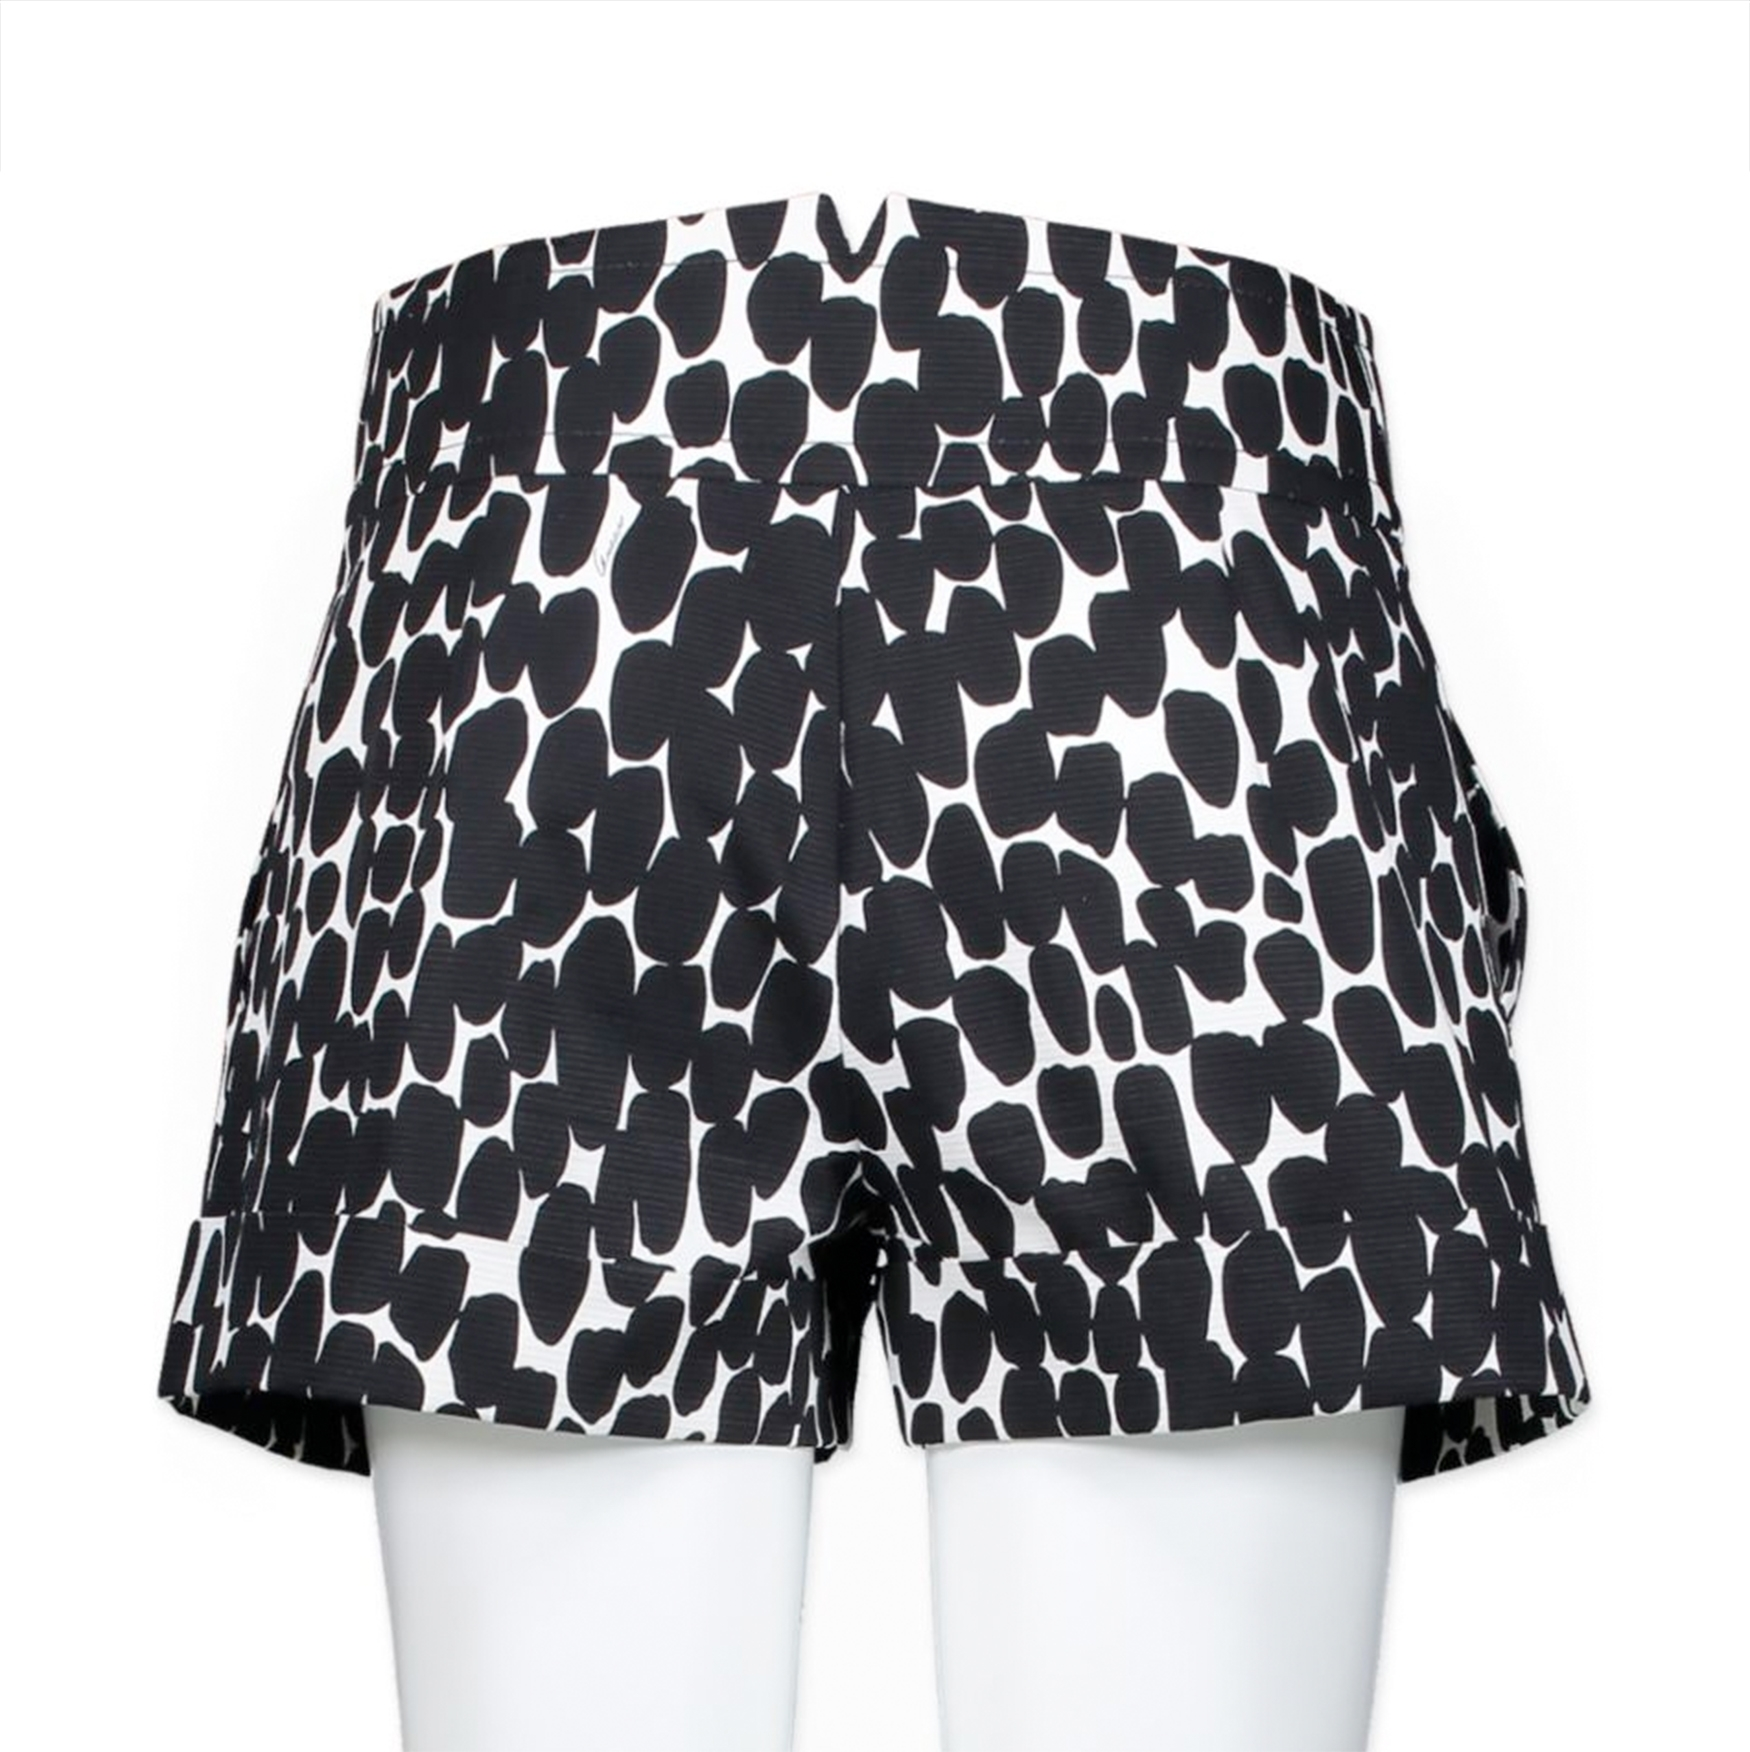 Gucci Black-White Print Short - Size 38